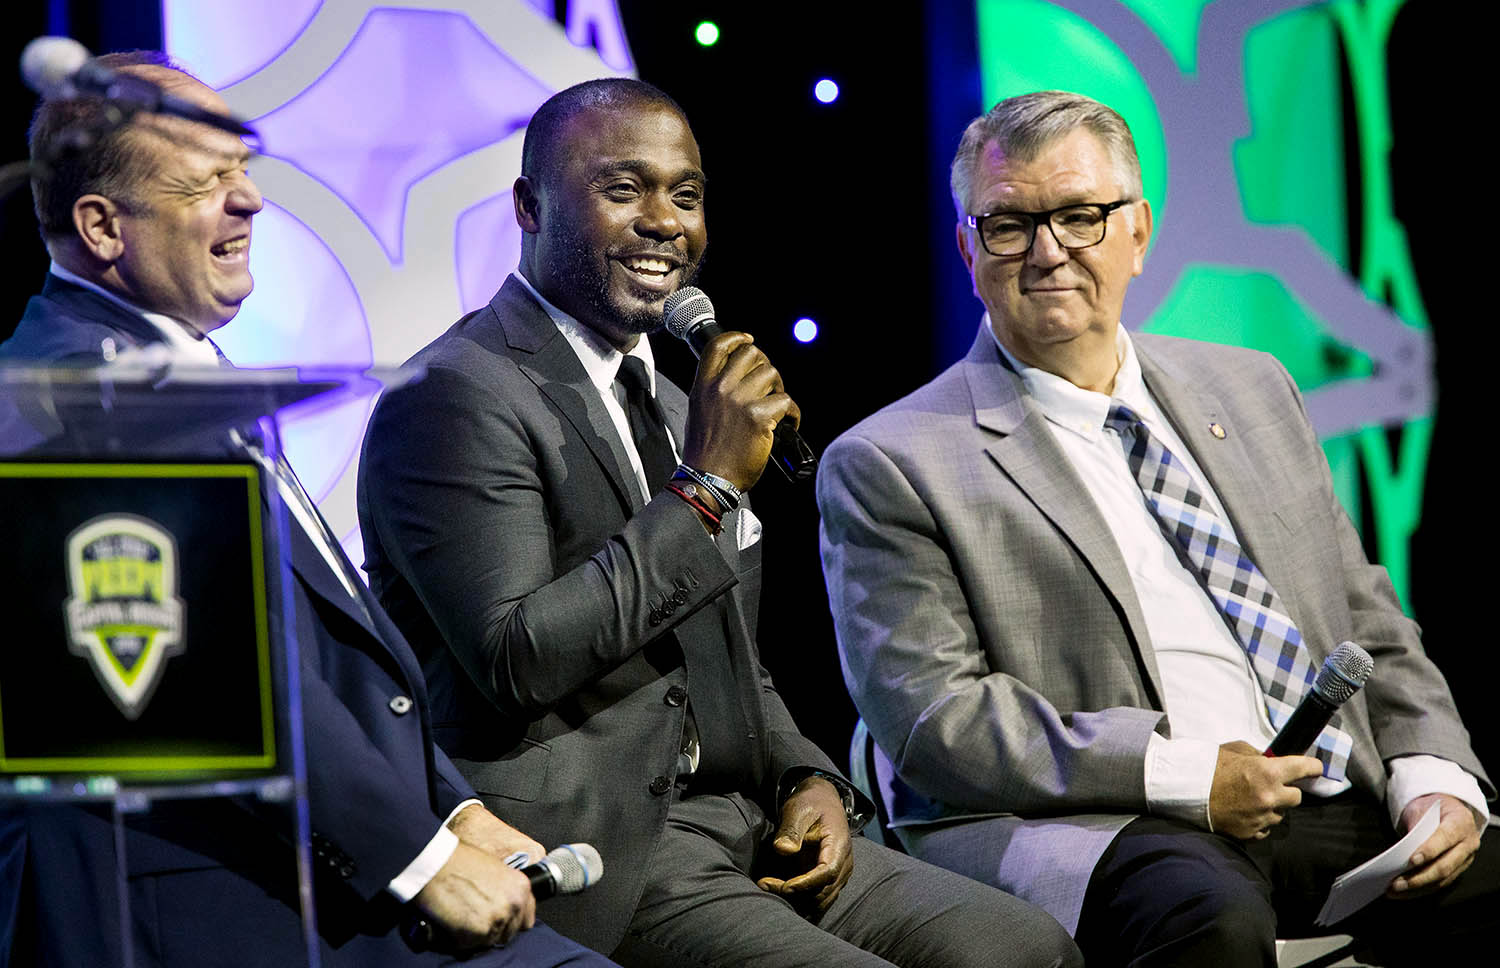 Former St. Louis Ram and Pro Football Hall of Famer Marshall Faulk laughs with Paul Wappel, left, and Jim Ruppert during the annual Best of Capital Region Preps Awards at the Bank of Springfield Center Thursday, June 27, 2019. [Ted Schurter/The State Journal-Register]